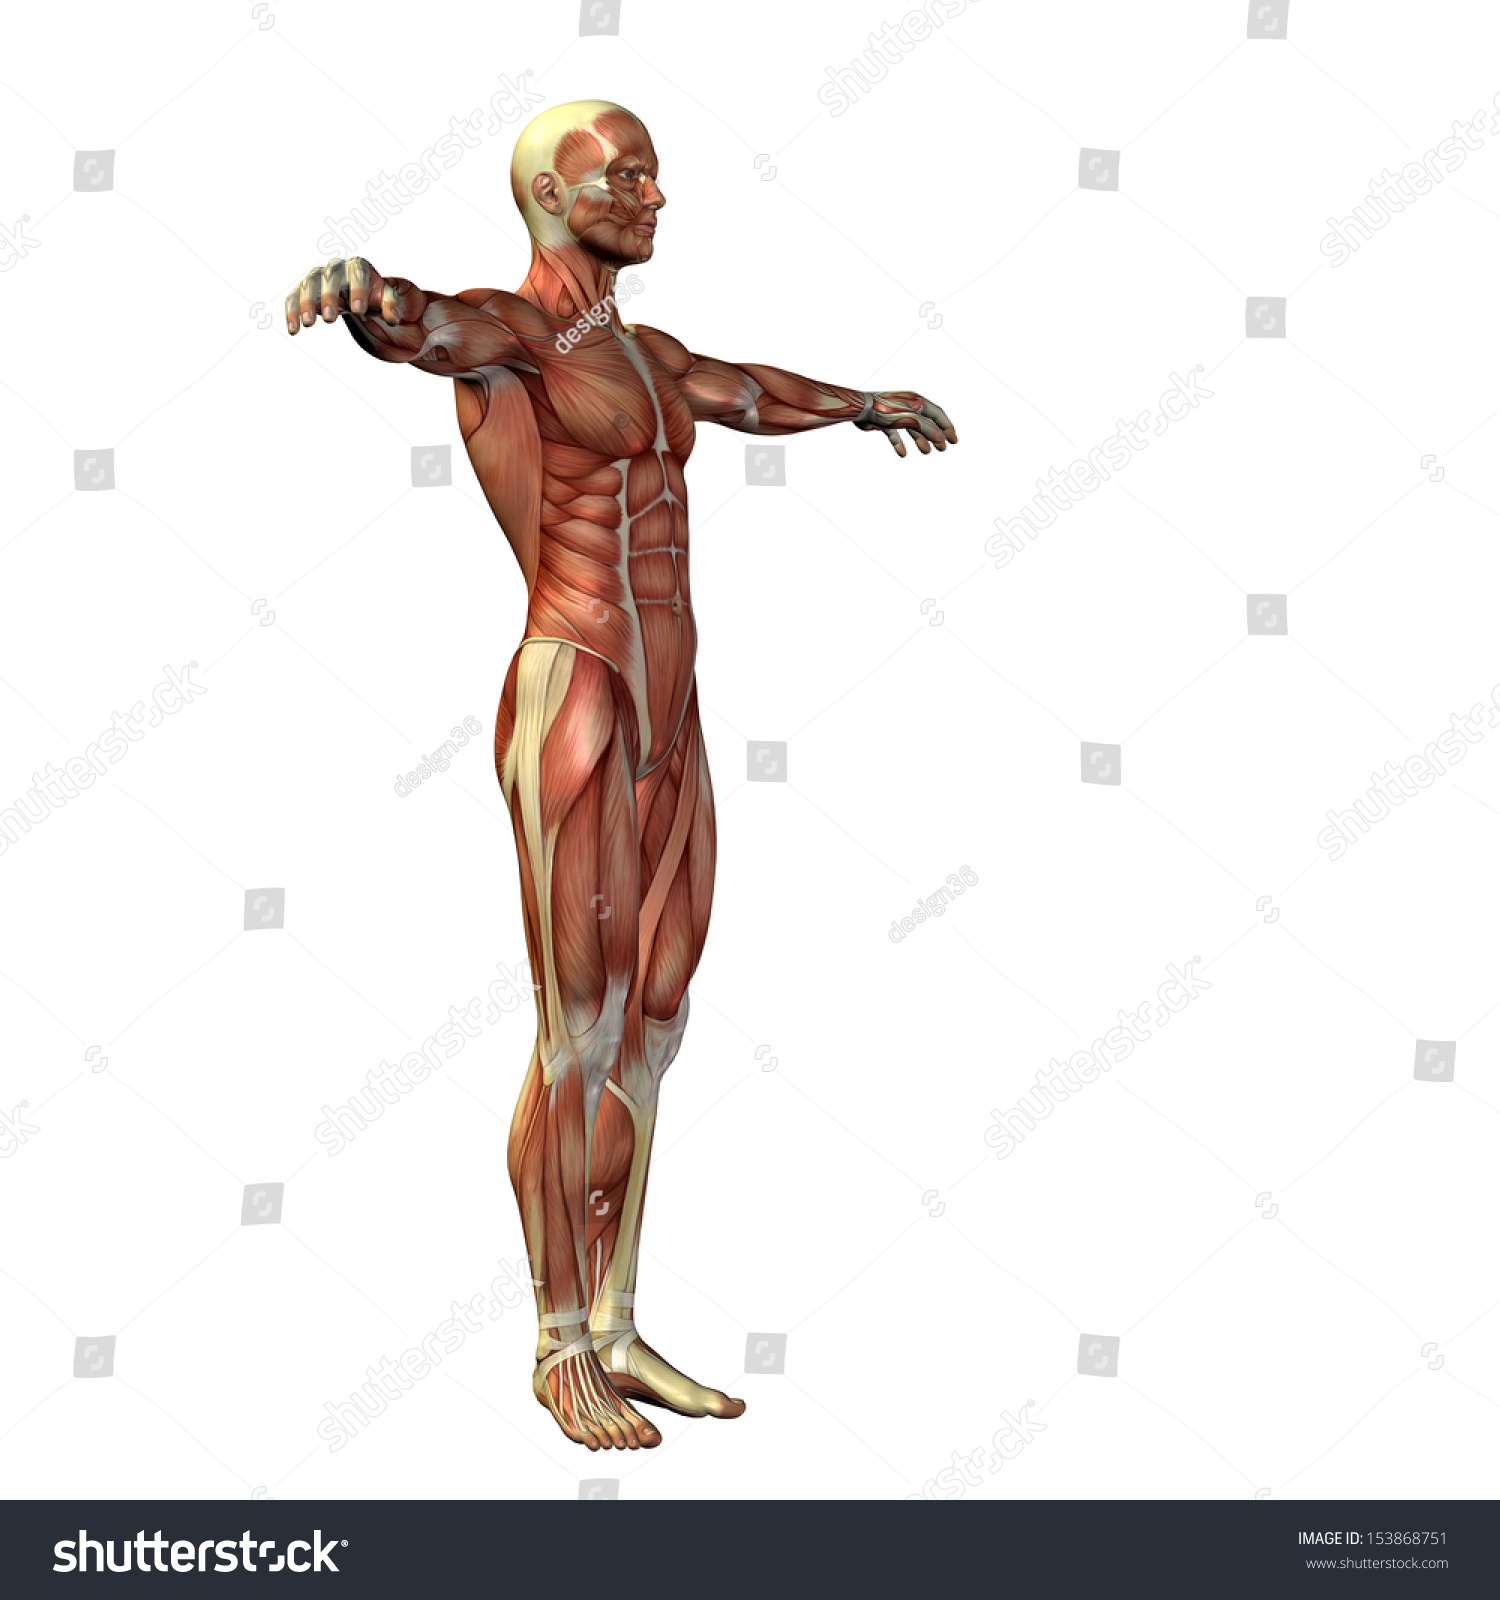 High Resolution Concept Conceptual Human Man Stock Illustration ...